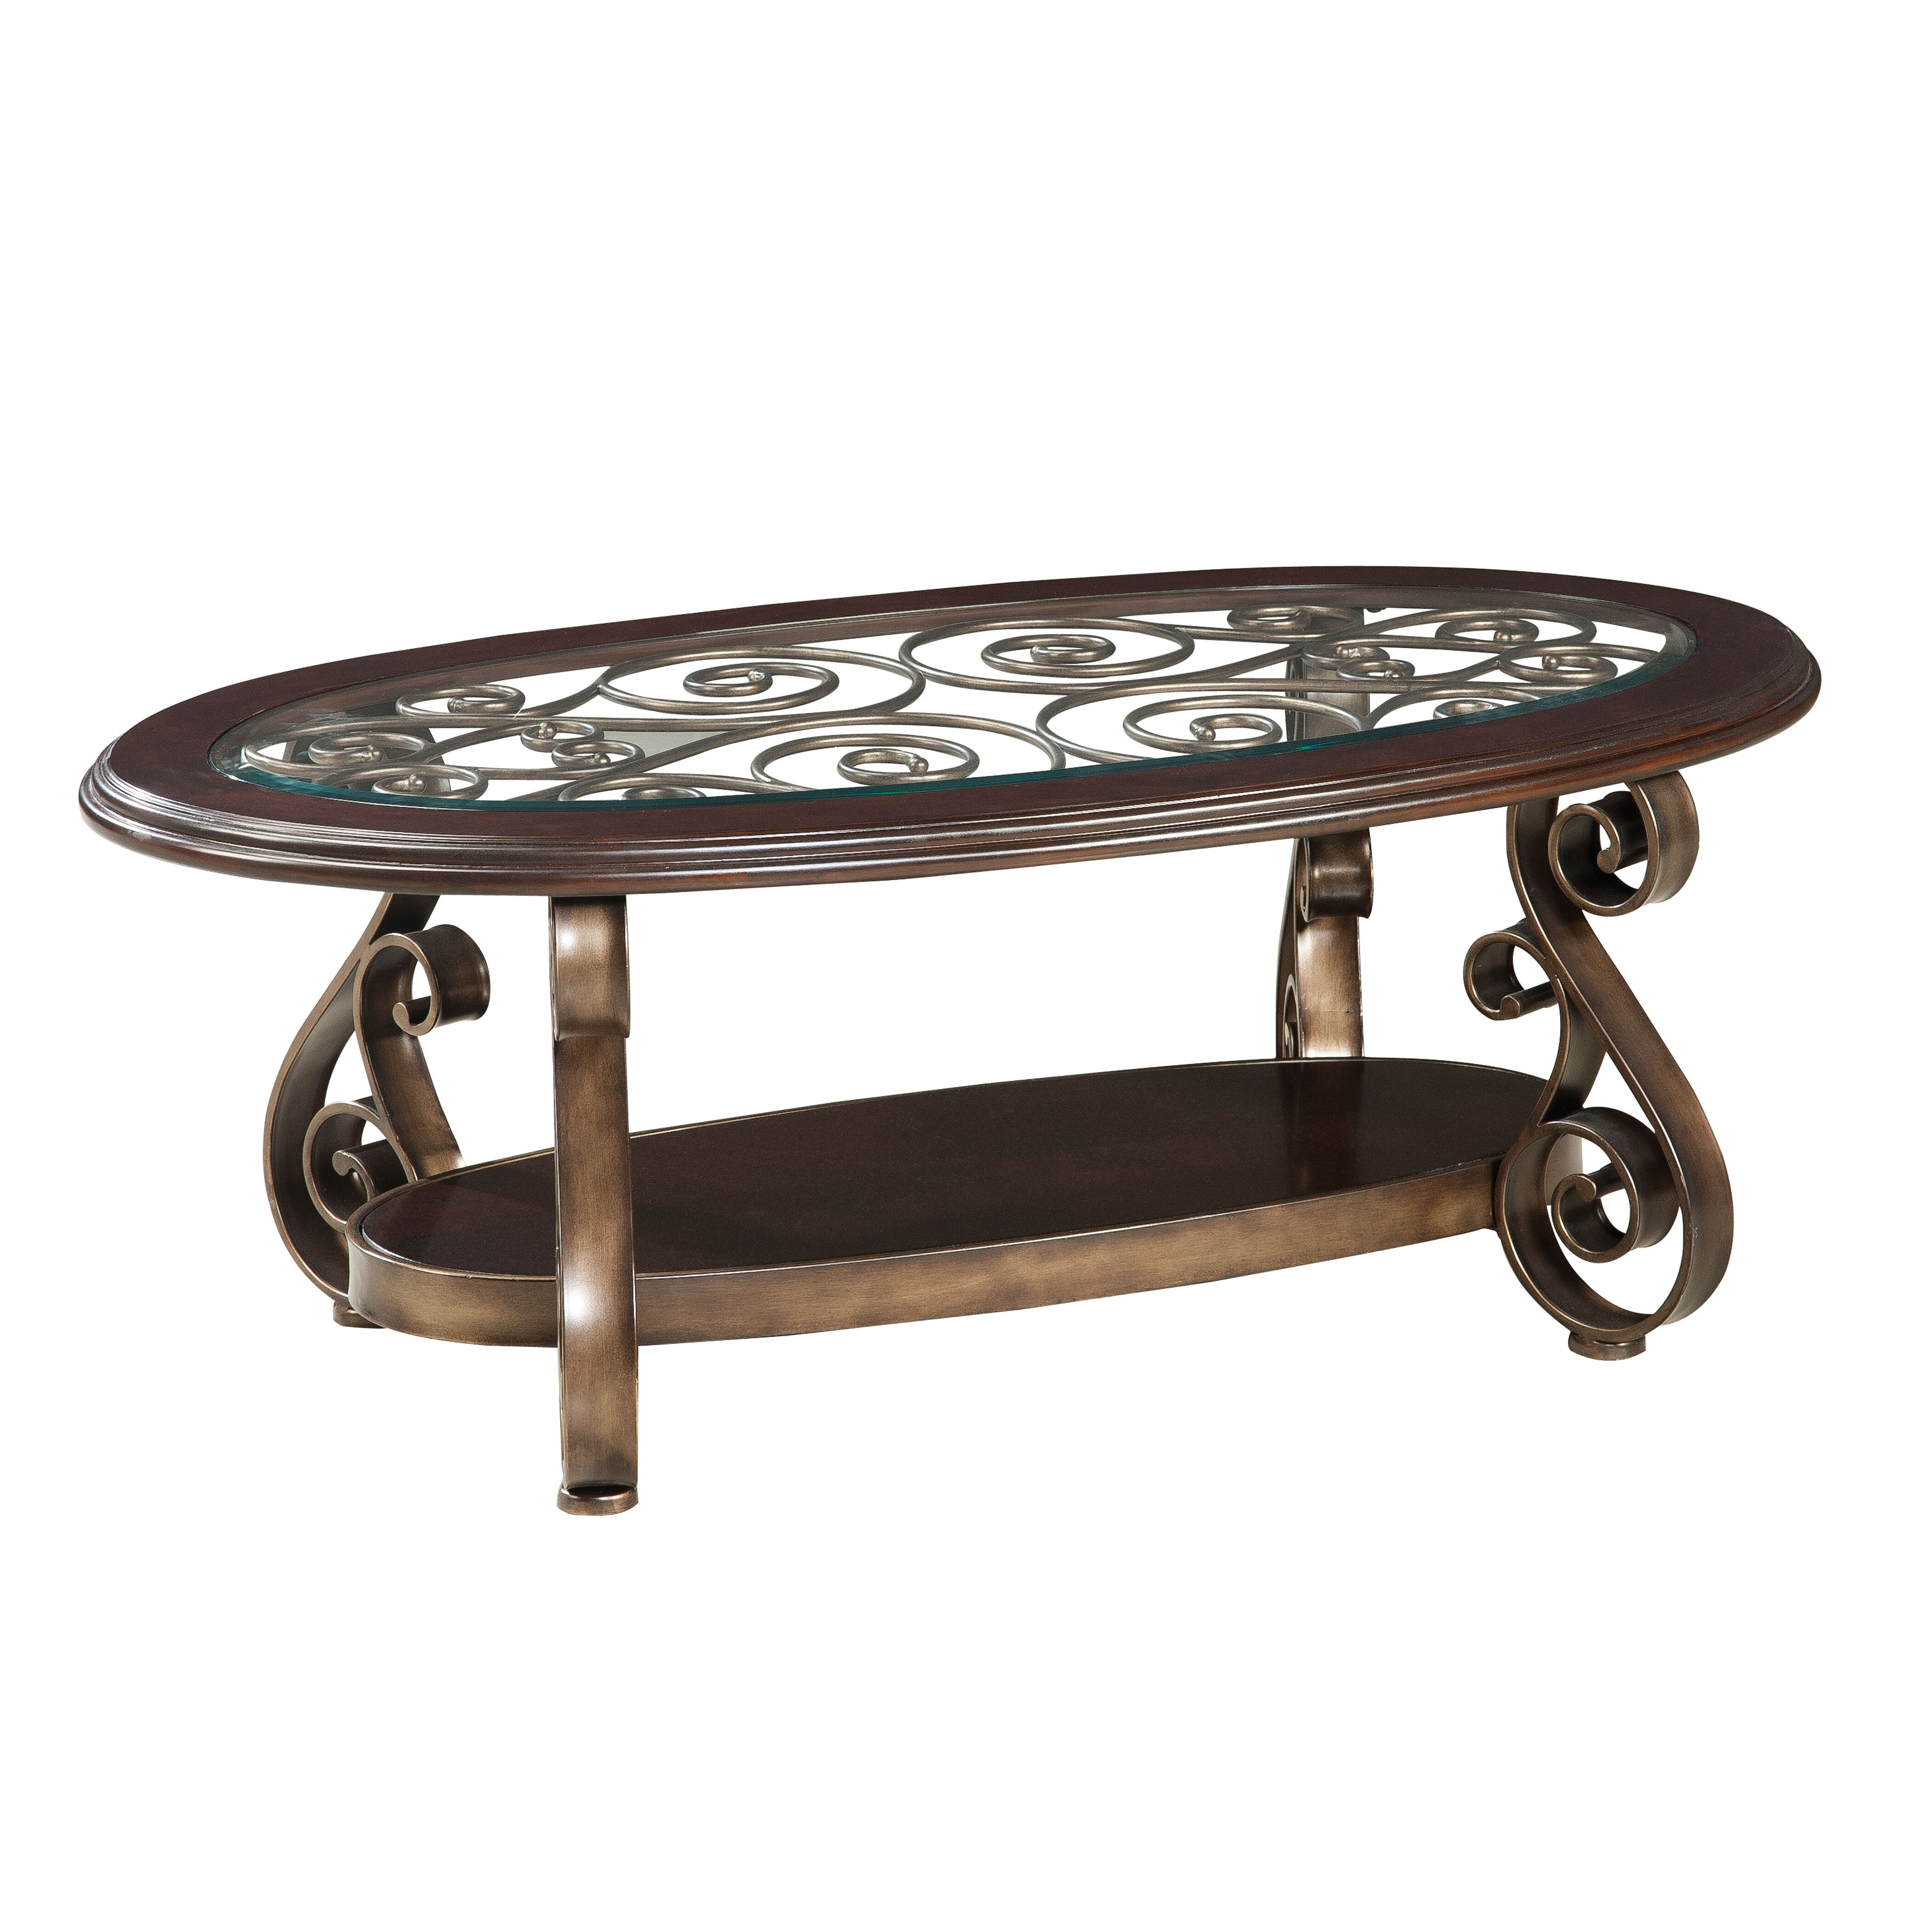 Standard furniture bombay coffee table reviews wayfair for Table standard